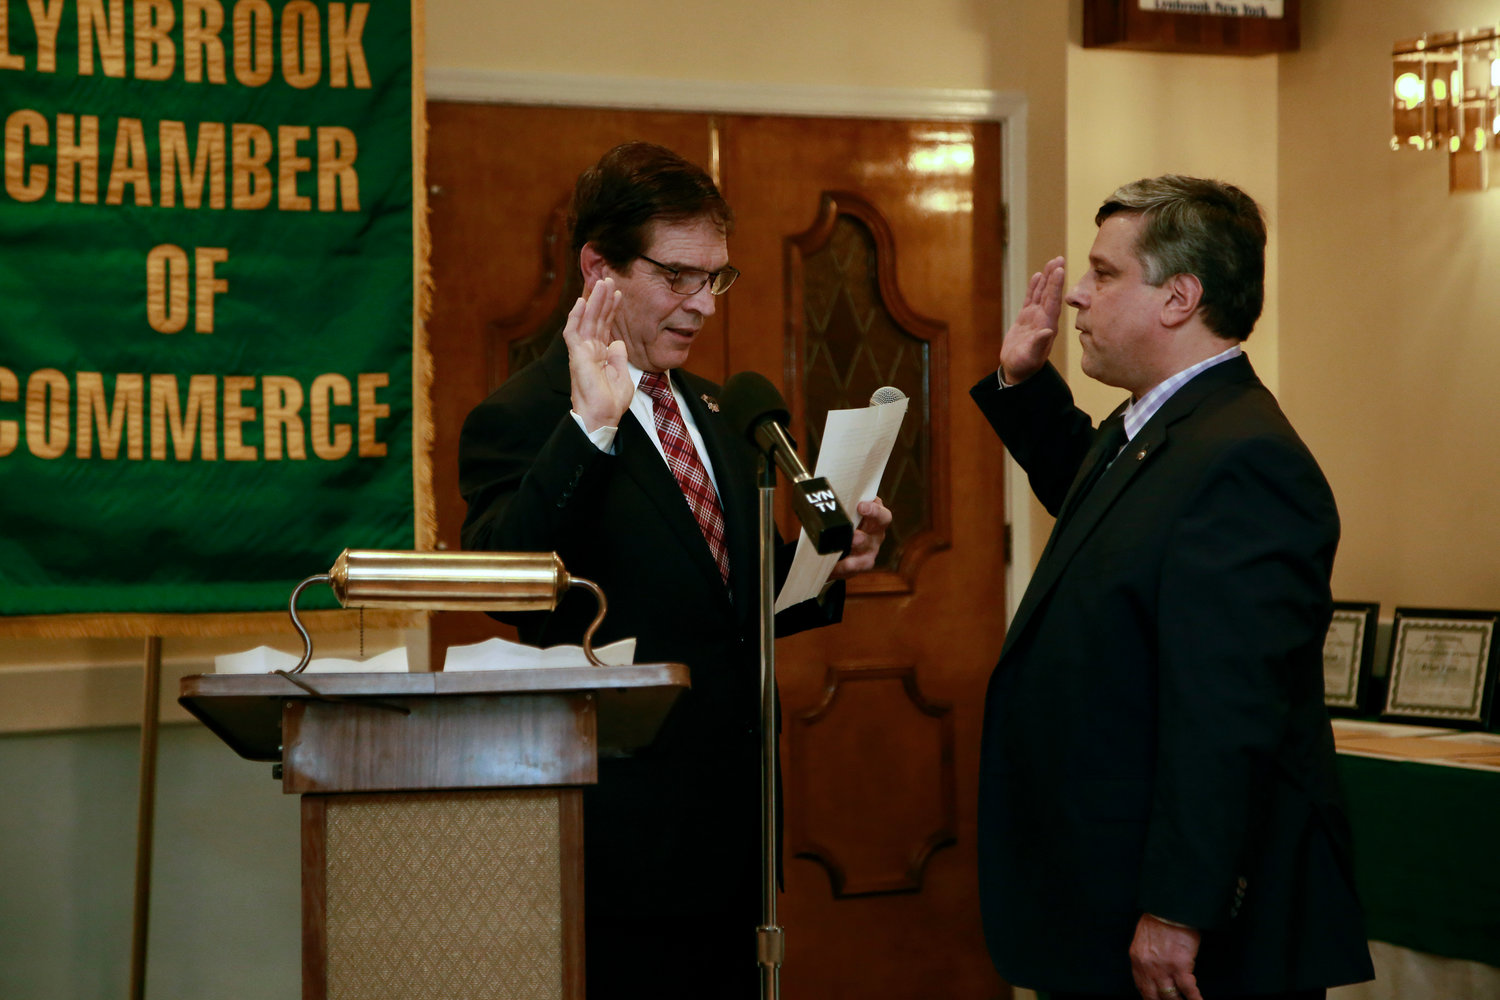 The Kitchen Loft owner Steve Wangel, right, was sworn in as the president of the Lynbrook Chamber of Commerce by Mayor Alan Beach on Jan. 25.